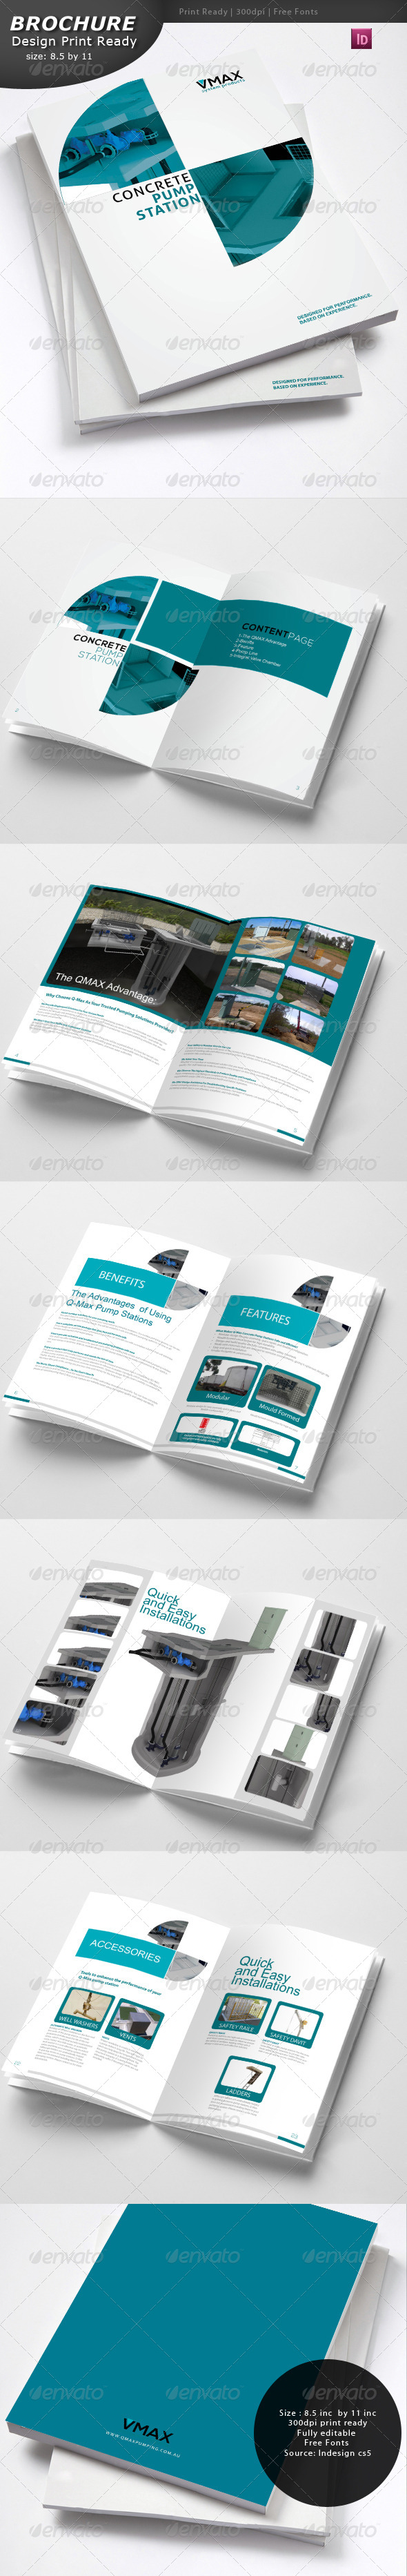 Brochure Design  - Catalogs Brochures